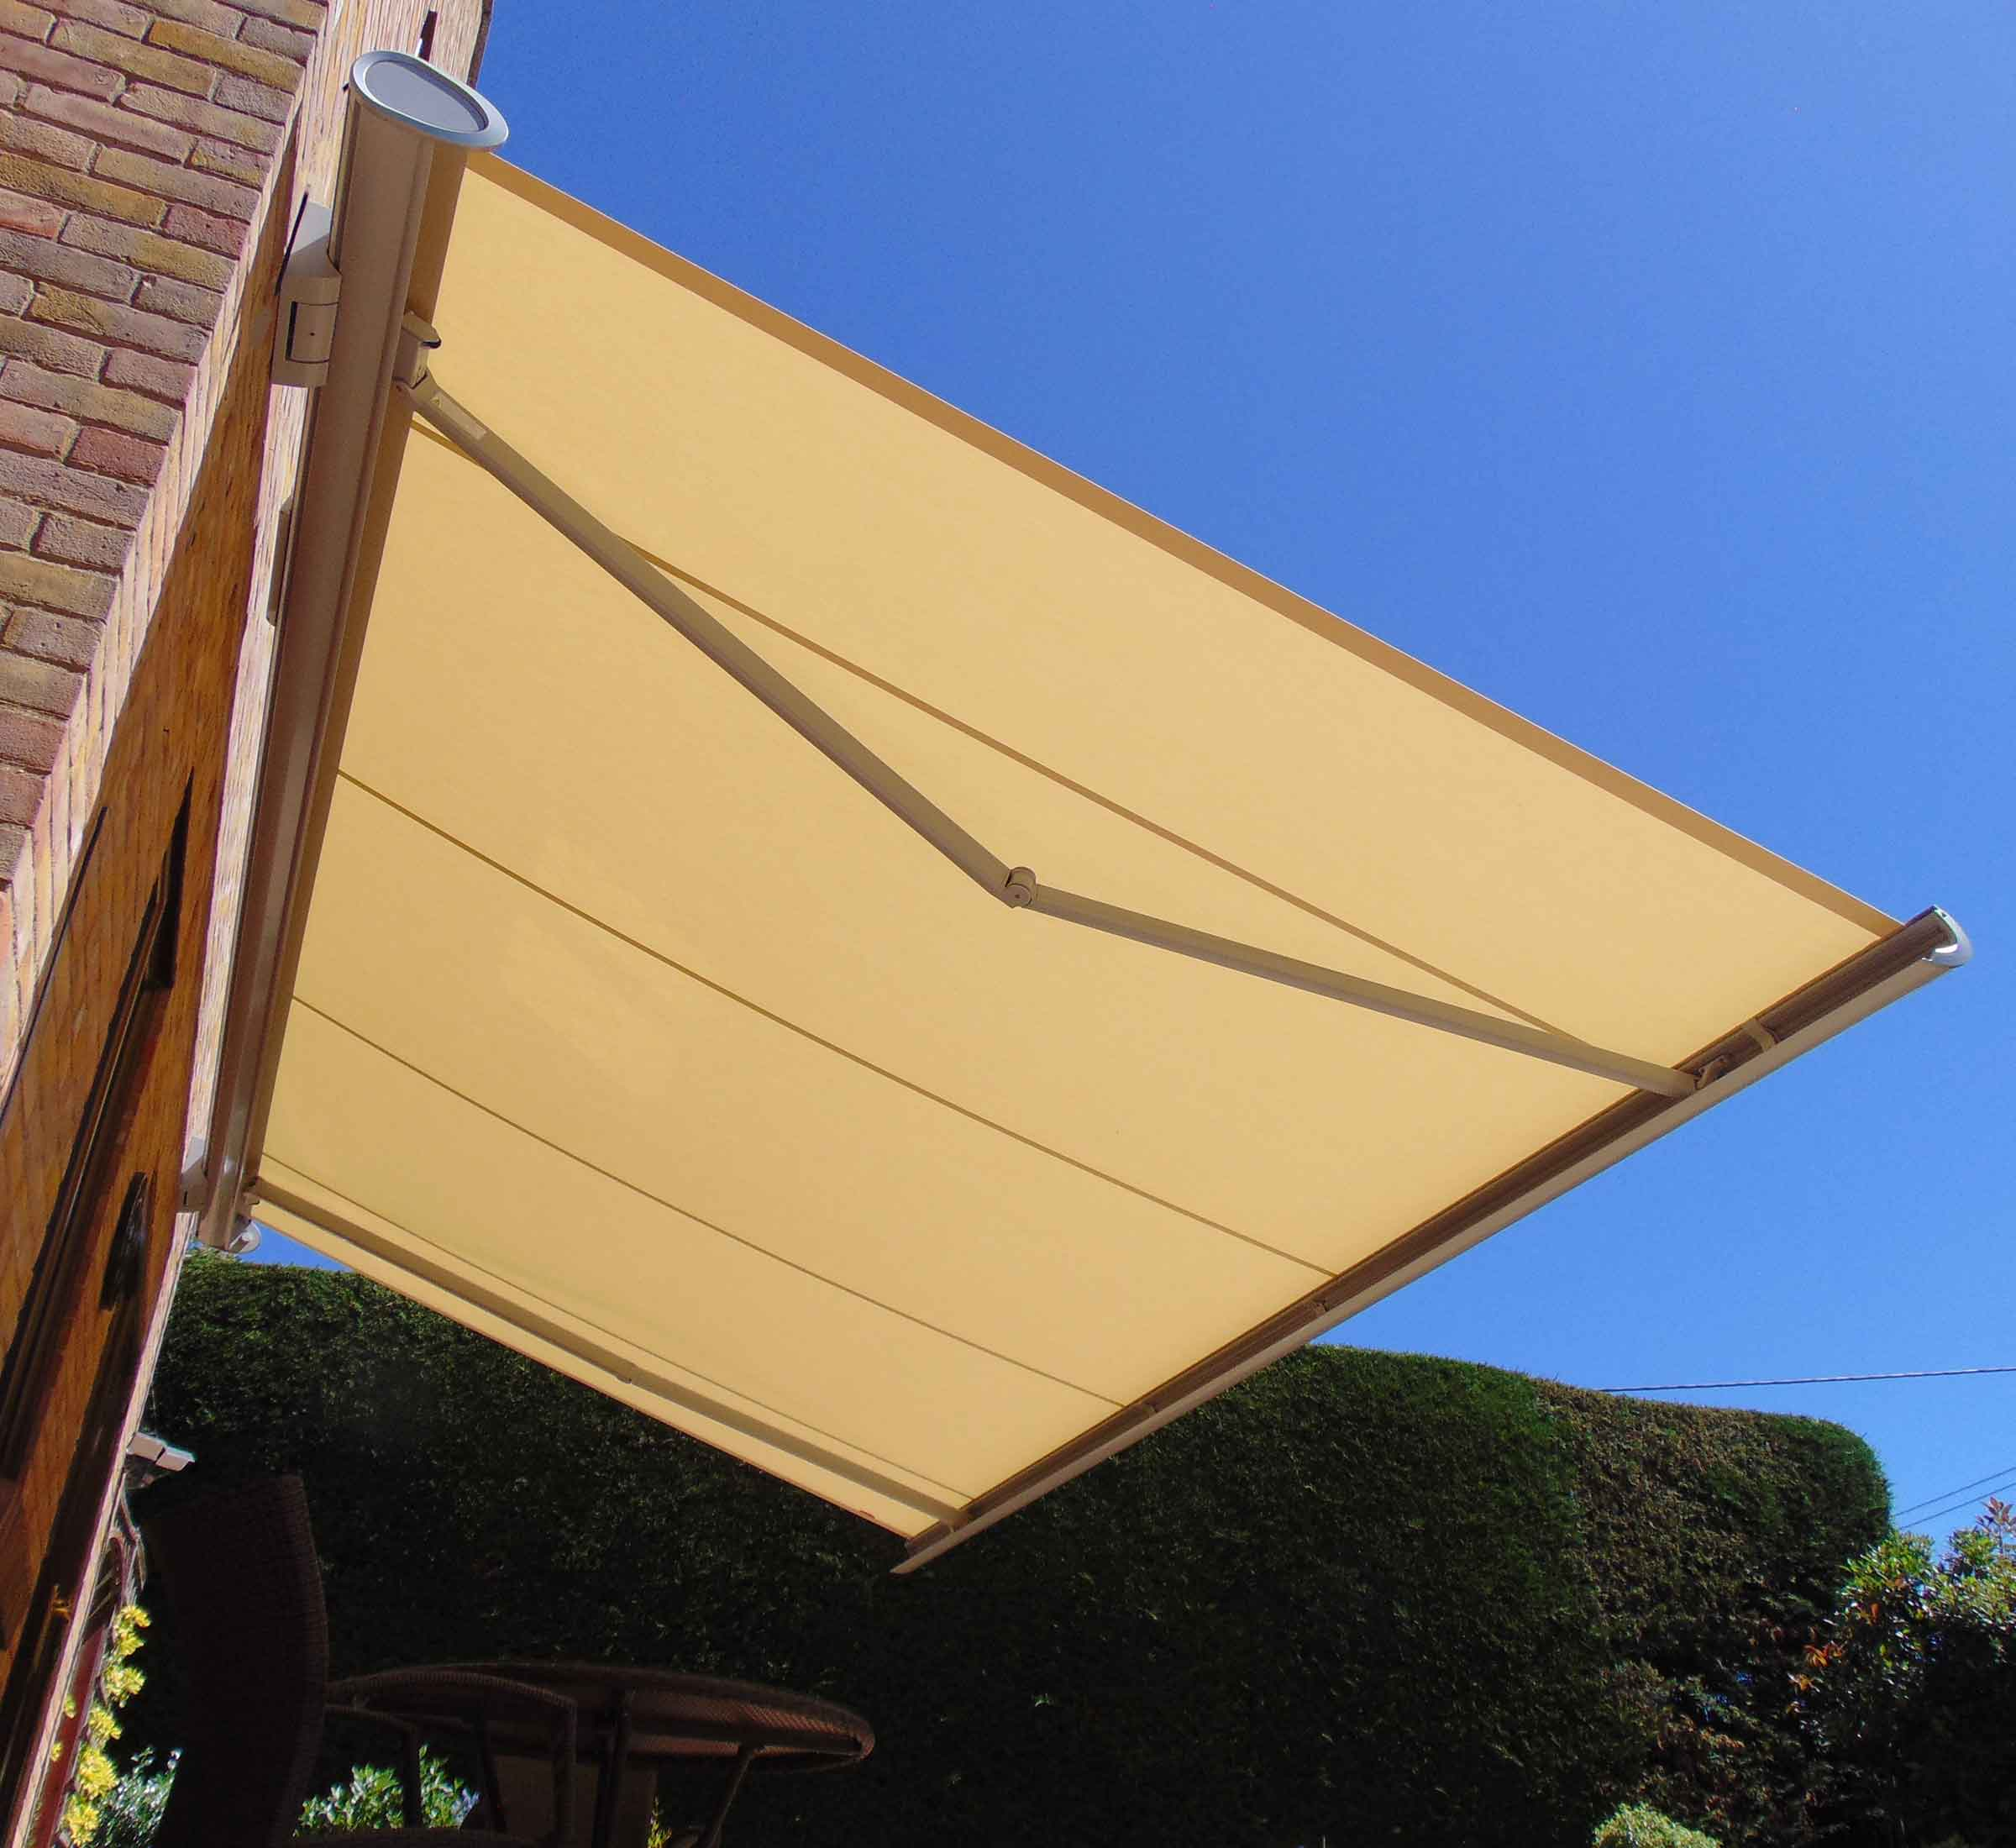 Underside view of awning